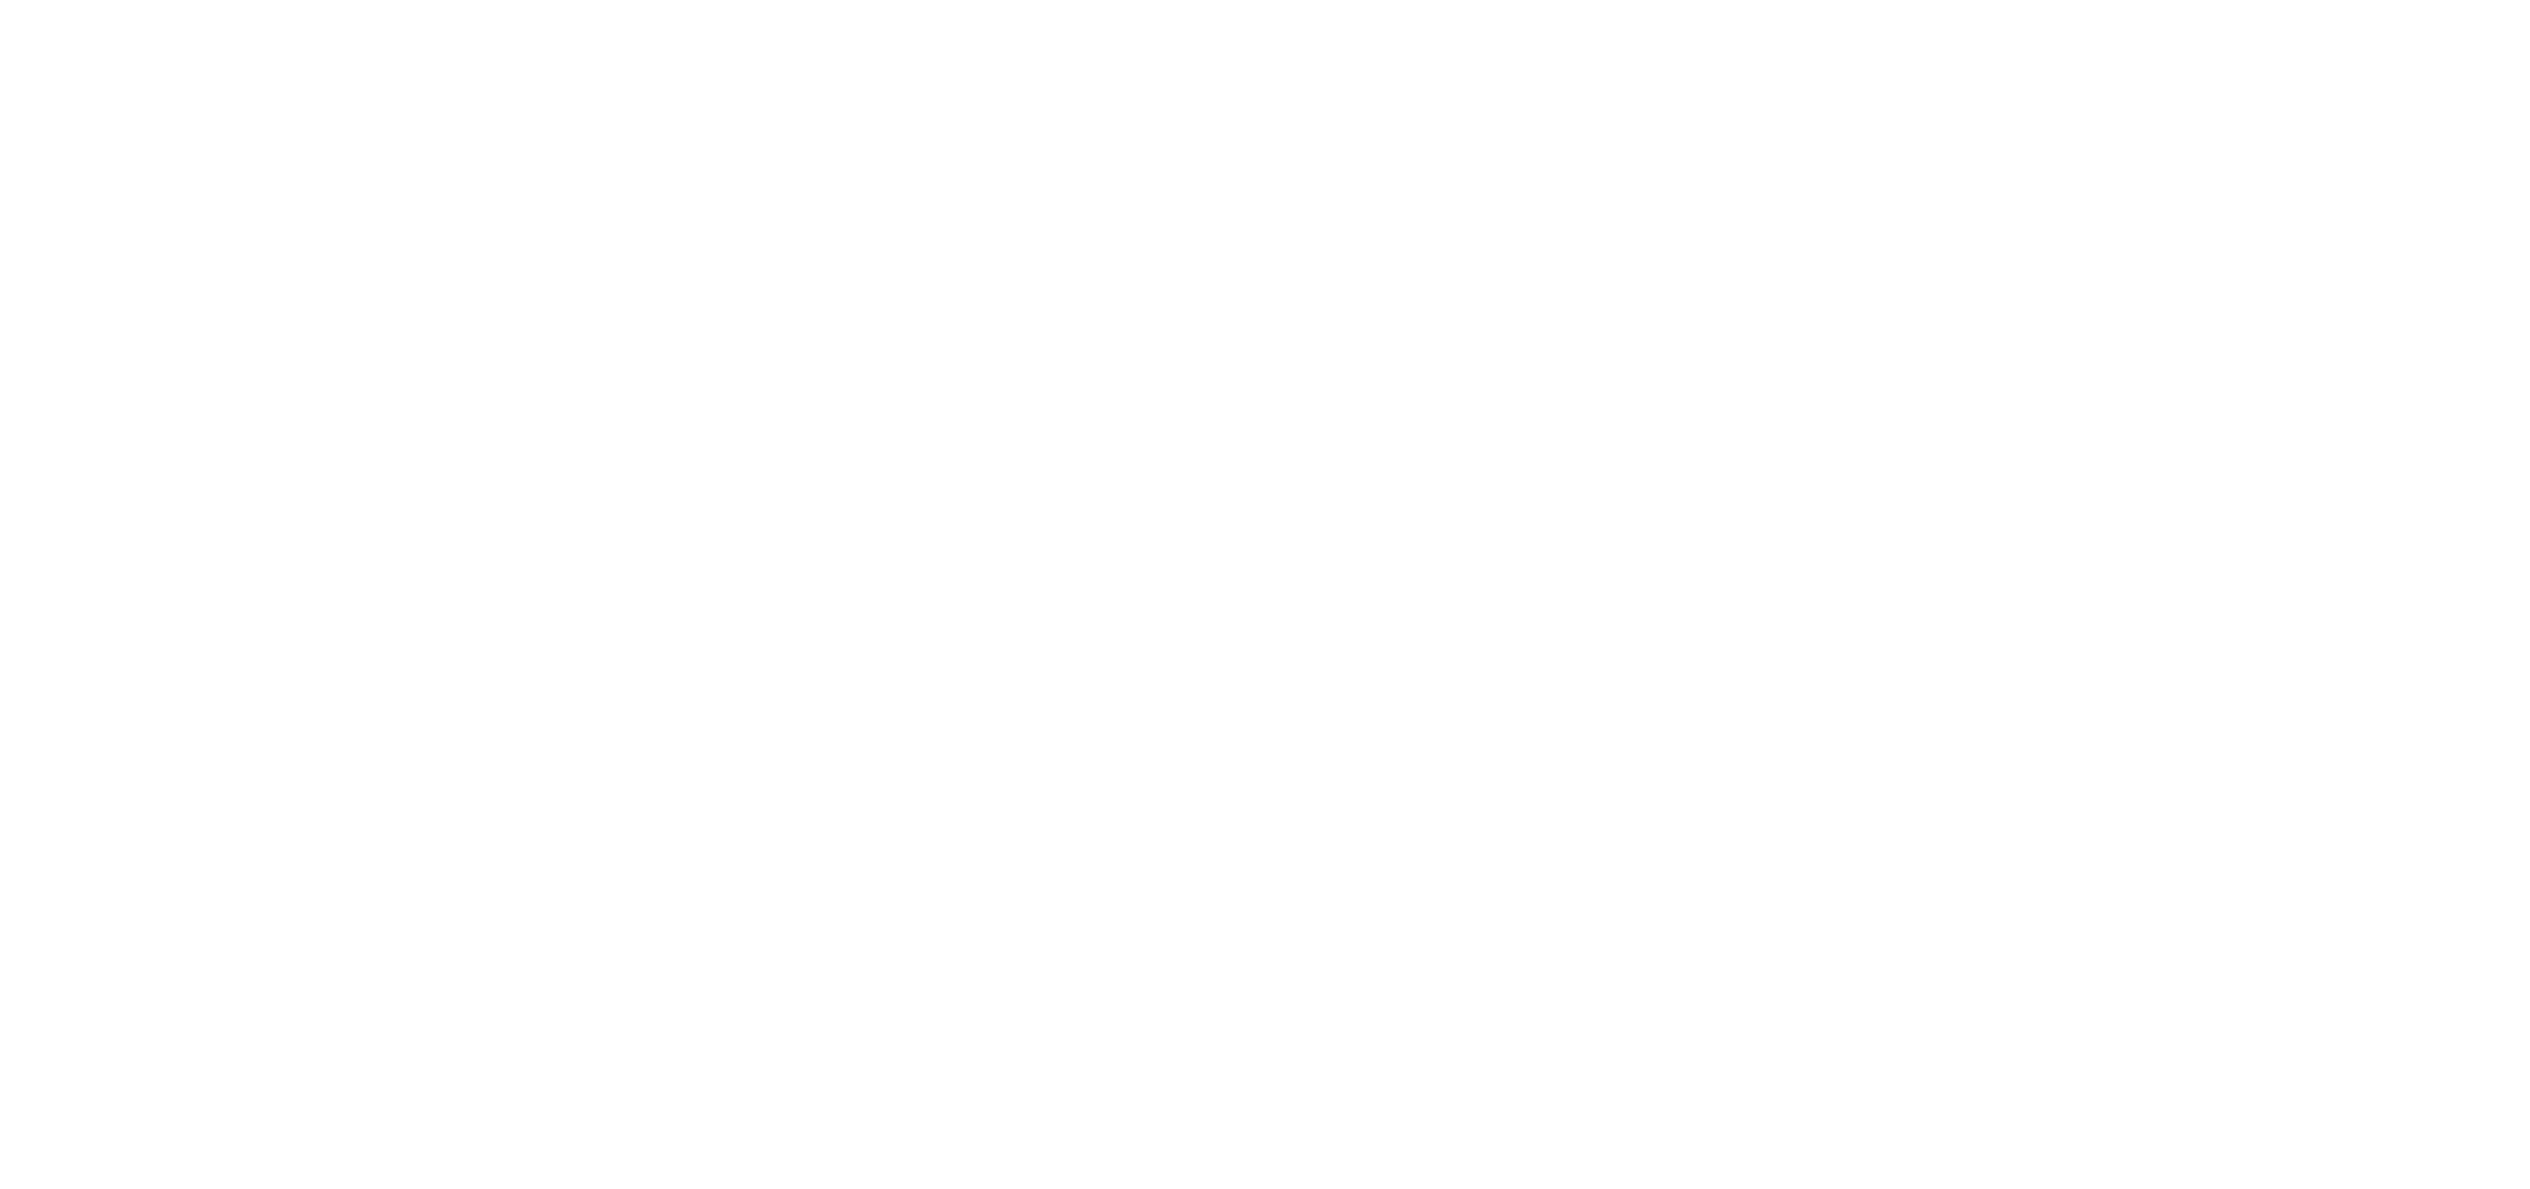 ecommerce evolution logo